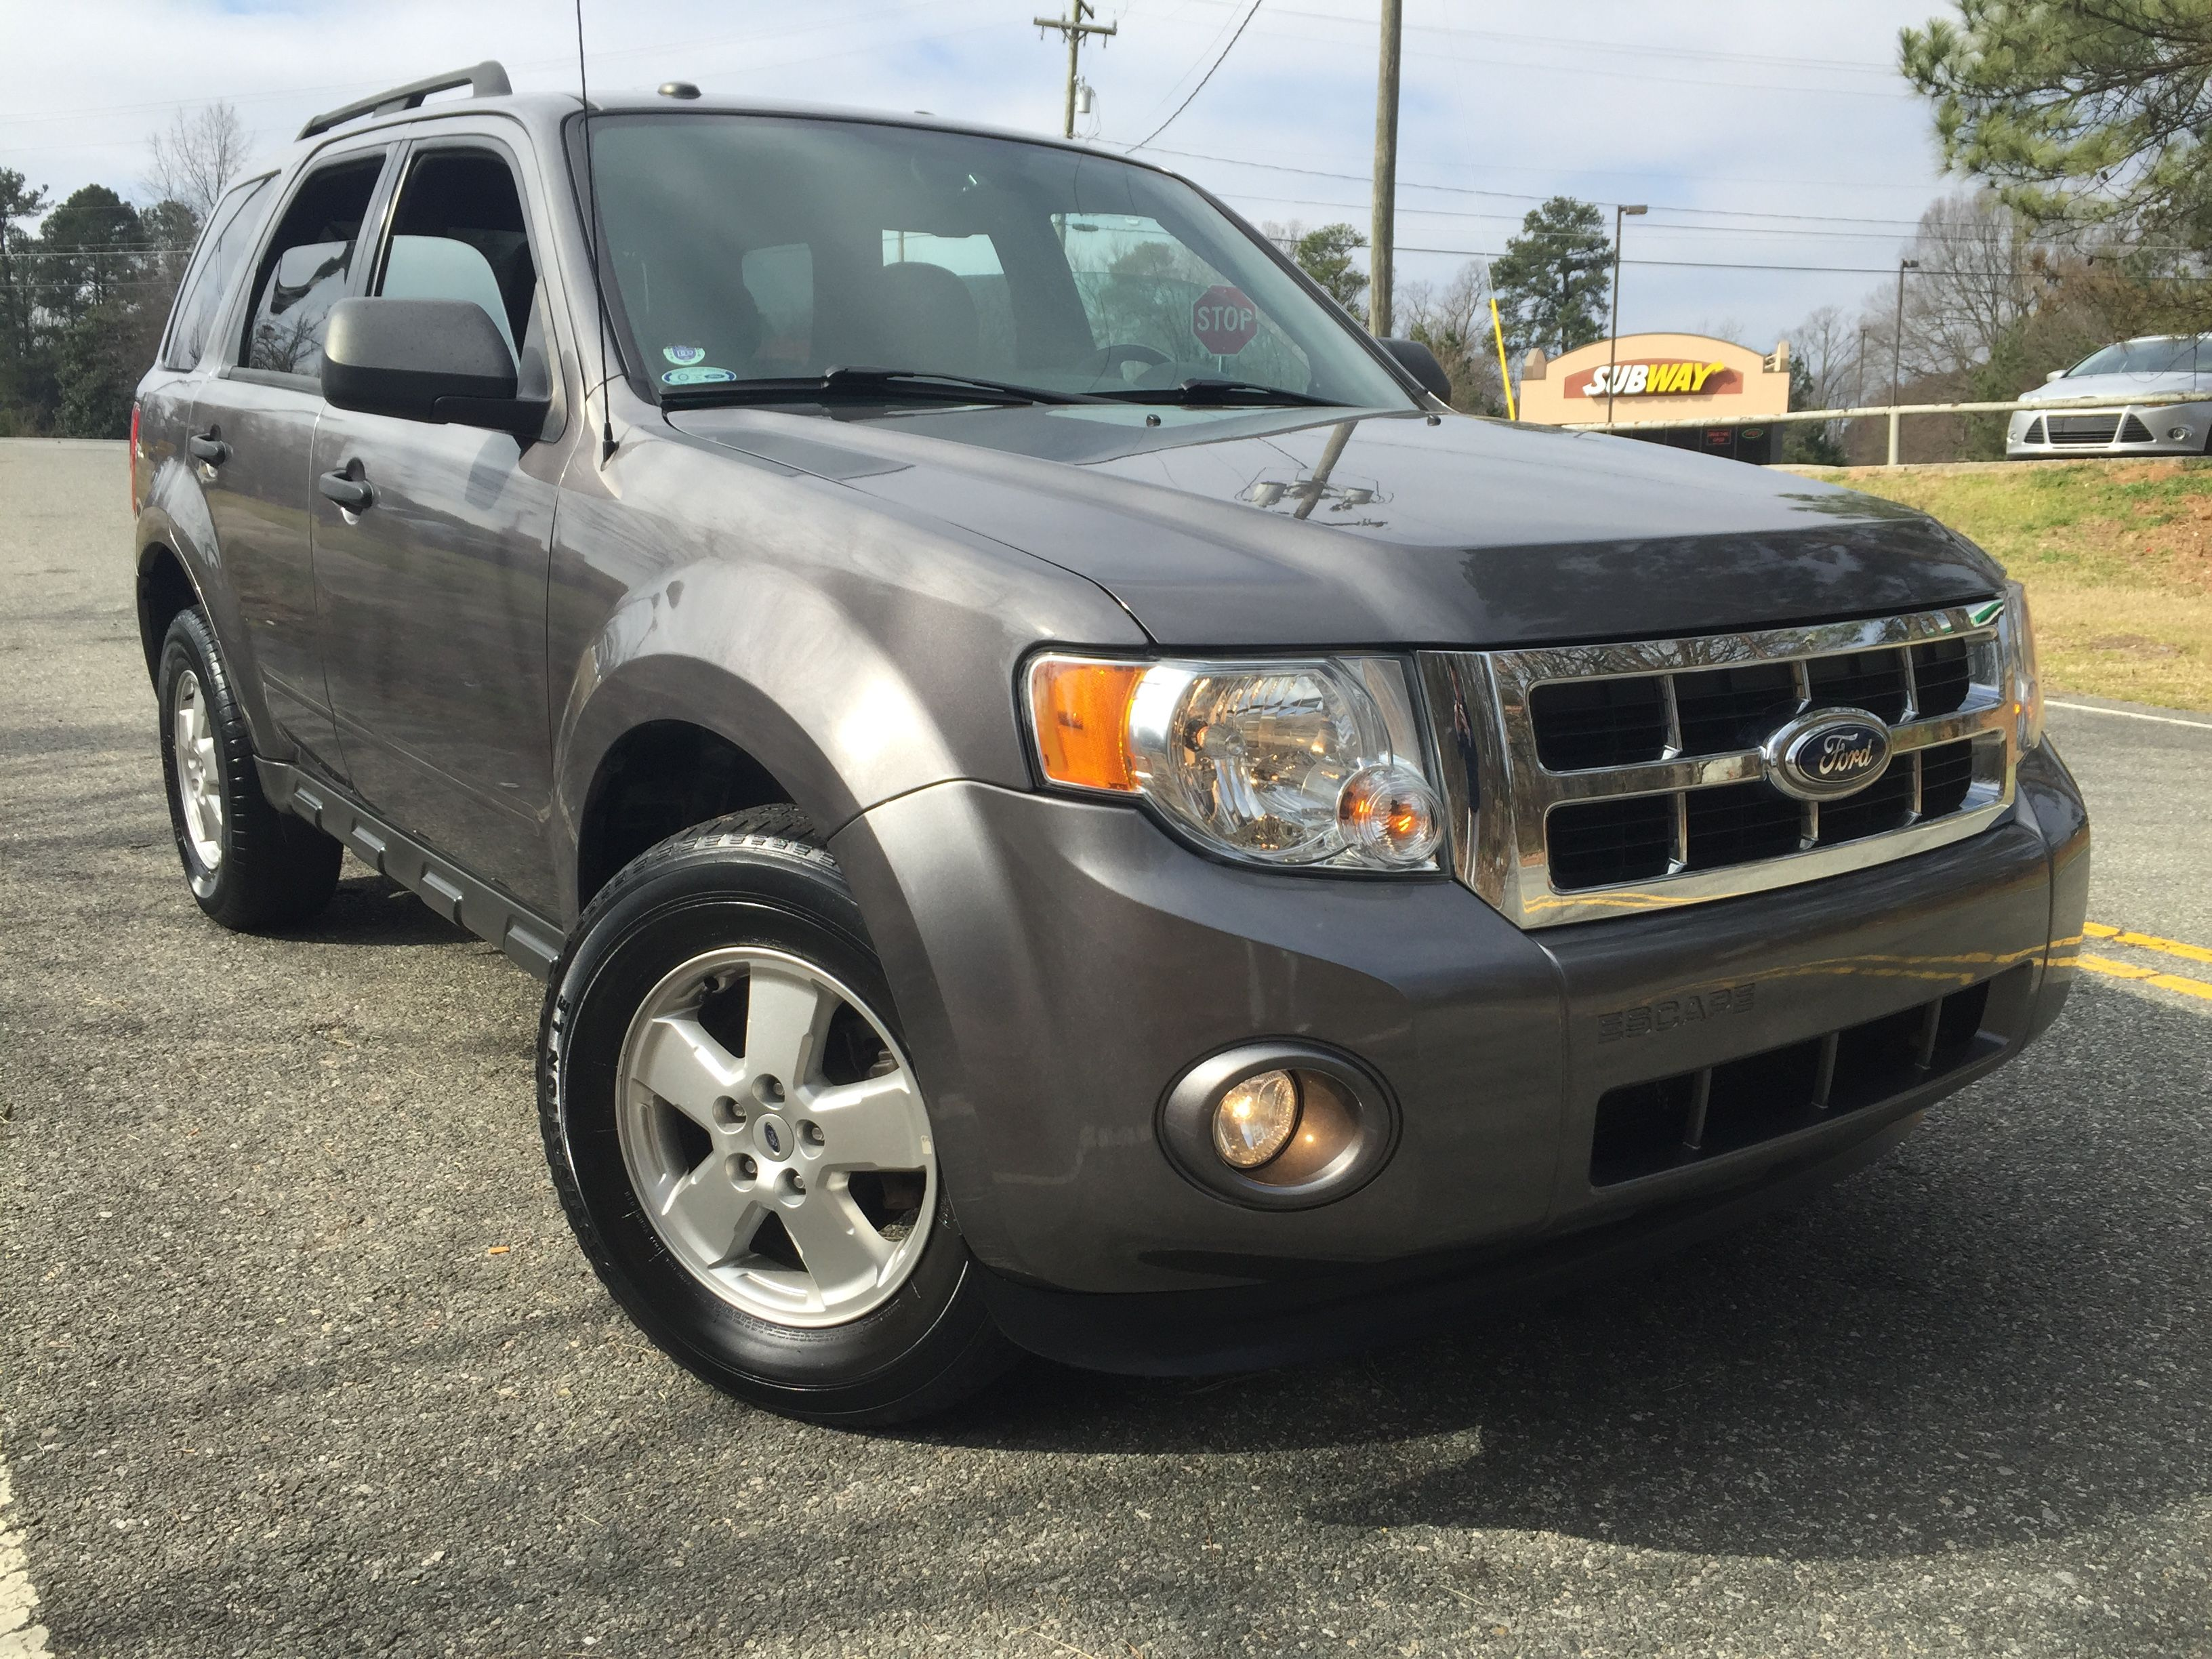 Used 2012 ford escape for sale durham nc ford escape xltcar